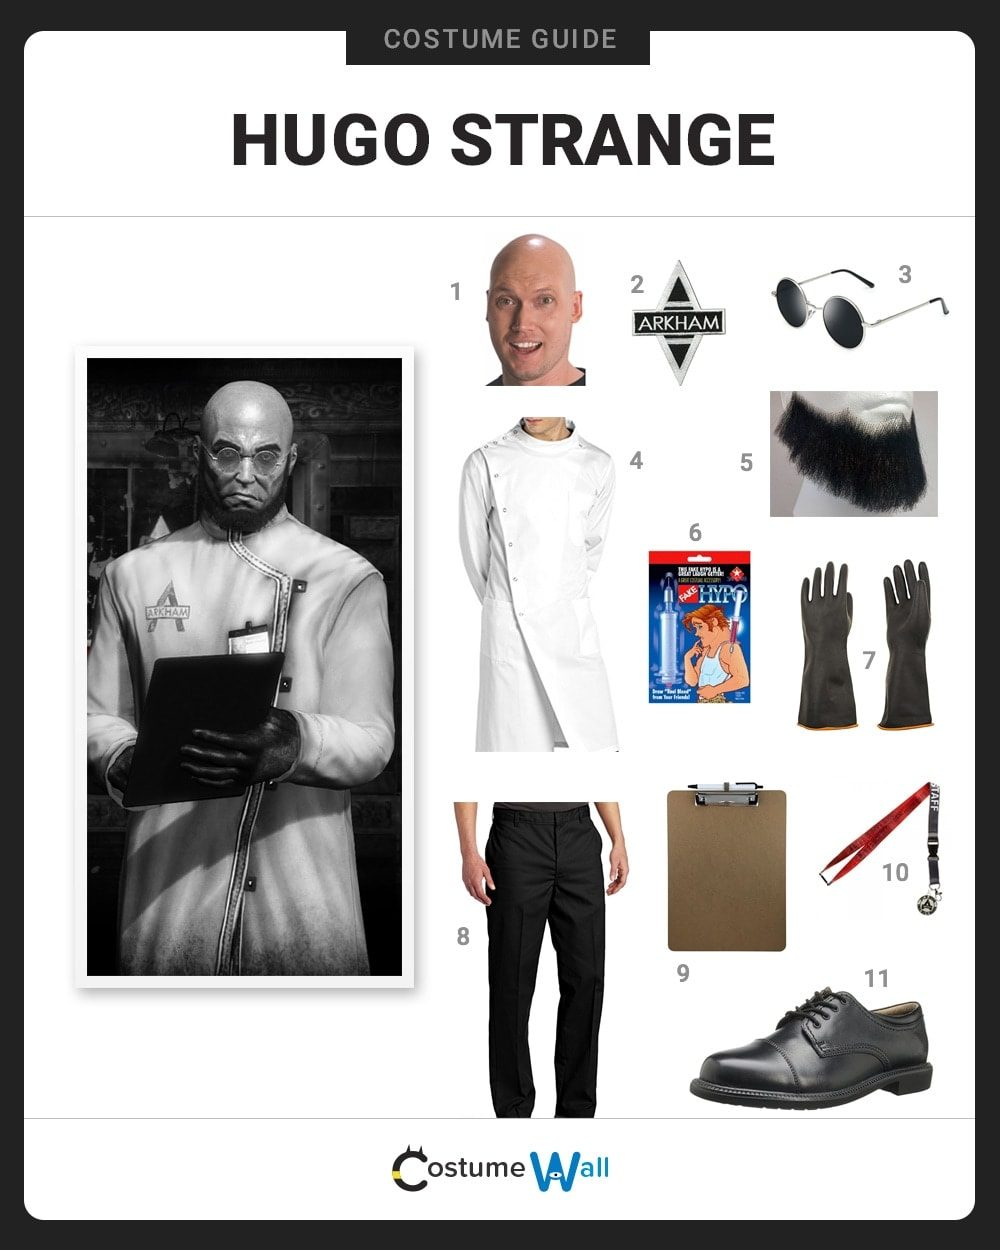 Hugo Strange Costume Guide